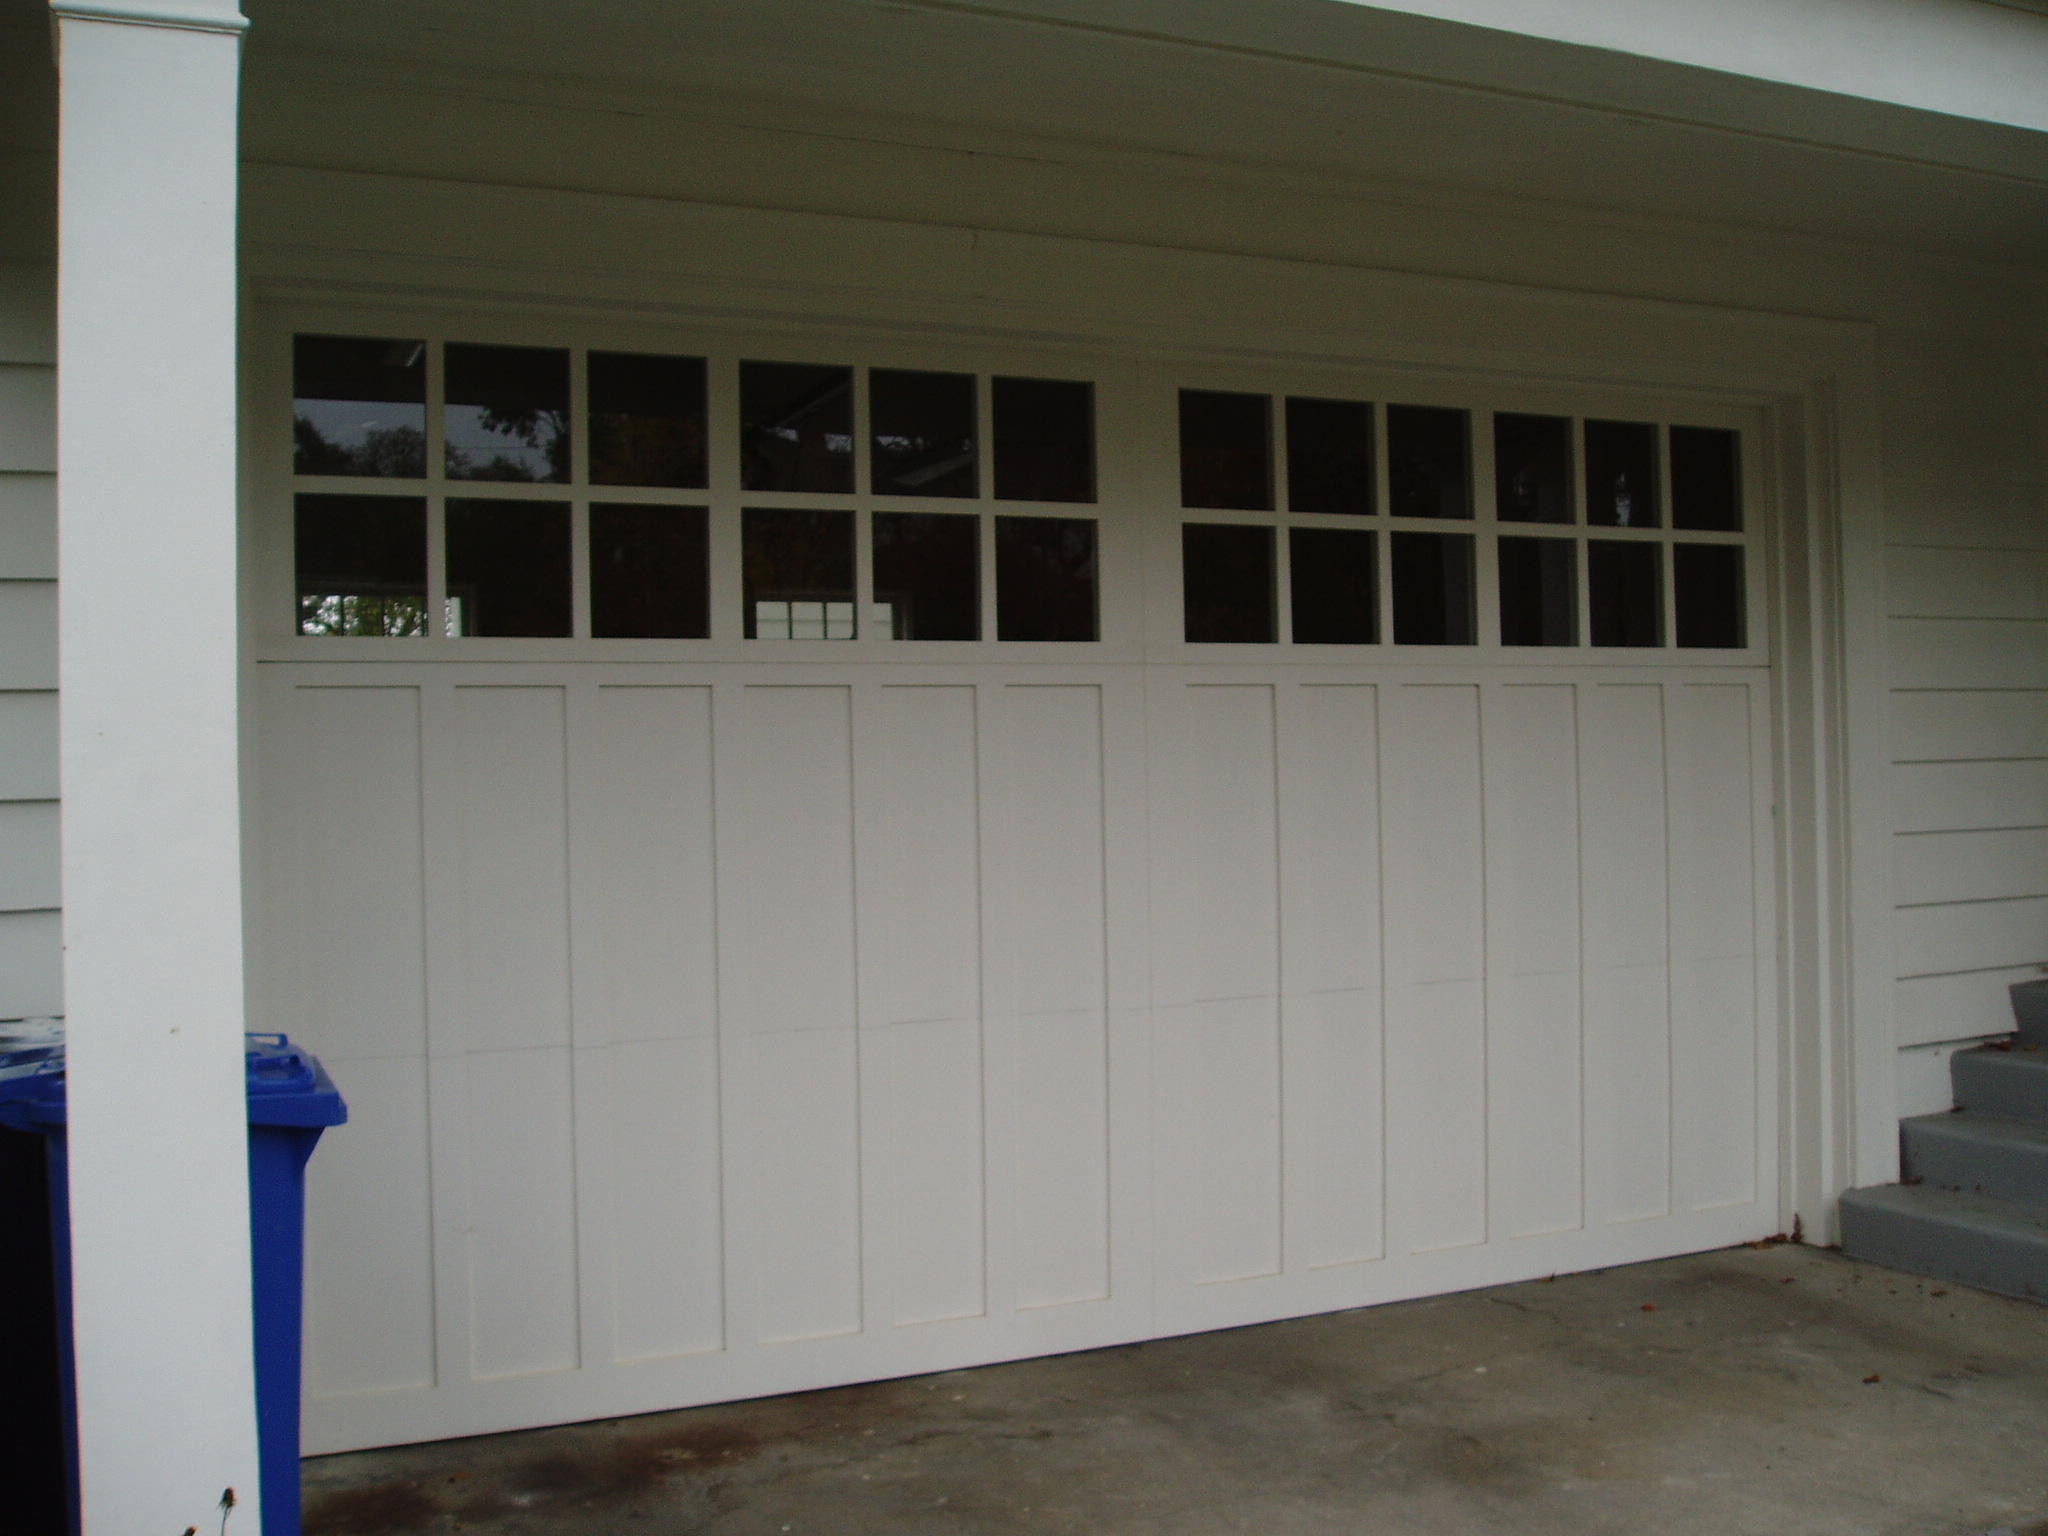 clements garage doors fiberglass door java finishes posts orrick makeover amy center stain scd general gel design